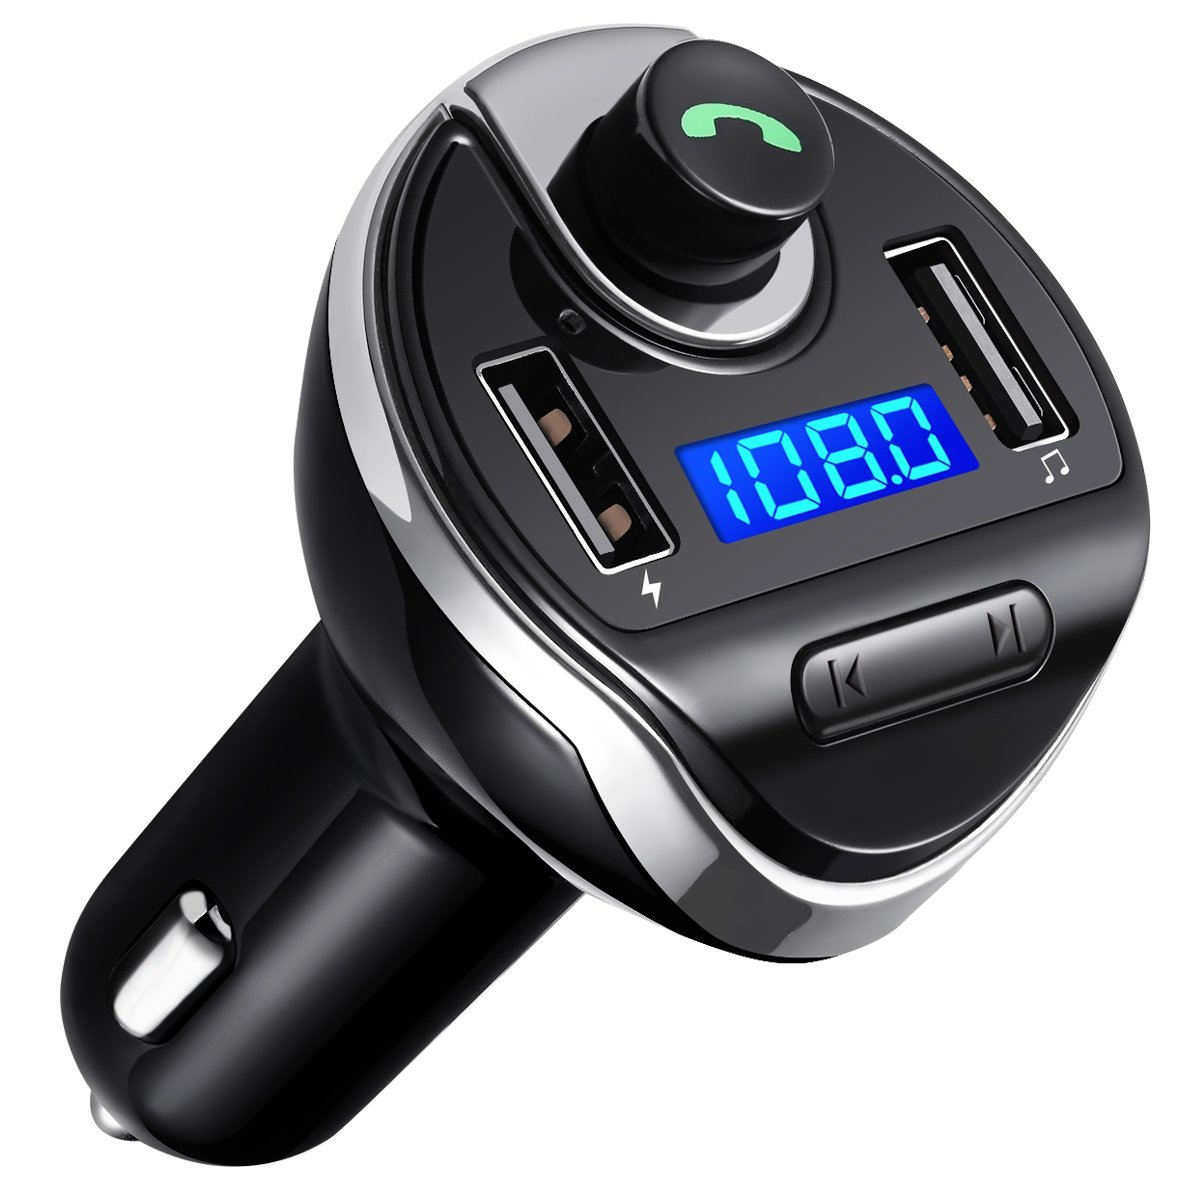 Criacr (Upgraded Version) Bluetooth FM Transmitter for Car, Wireless FM Radio Transmitter Adapter Car Kit, Dual USB Charging Ports, Hands Free Calling, U Disk, TF Card MP3 Music Player by Criacr